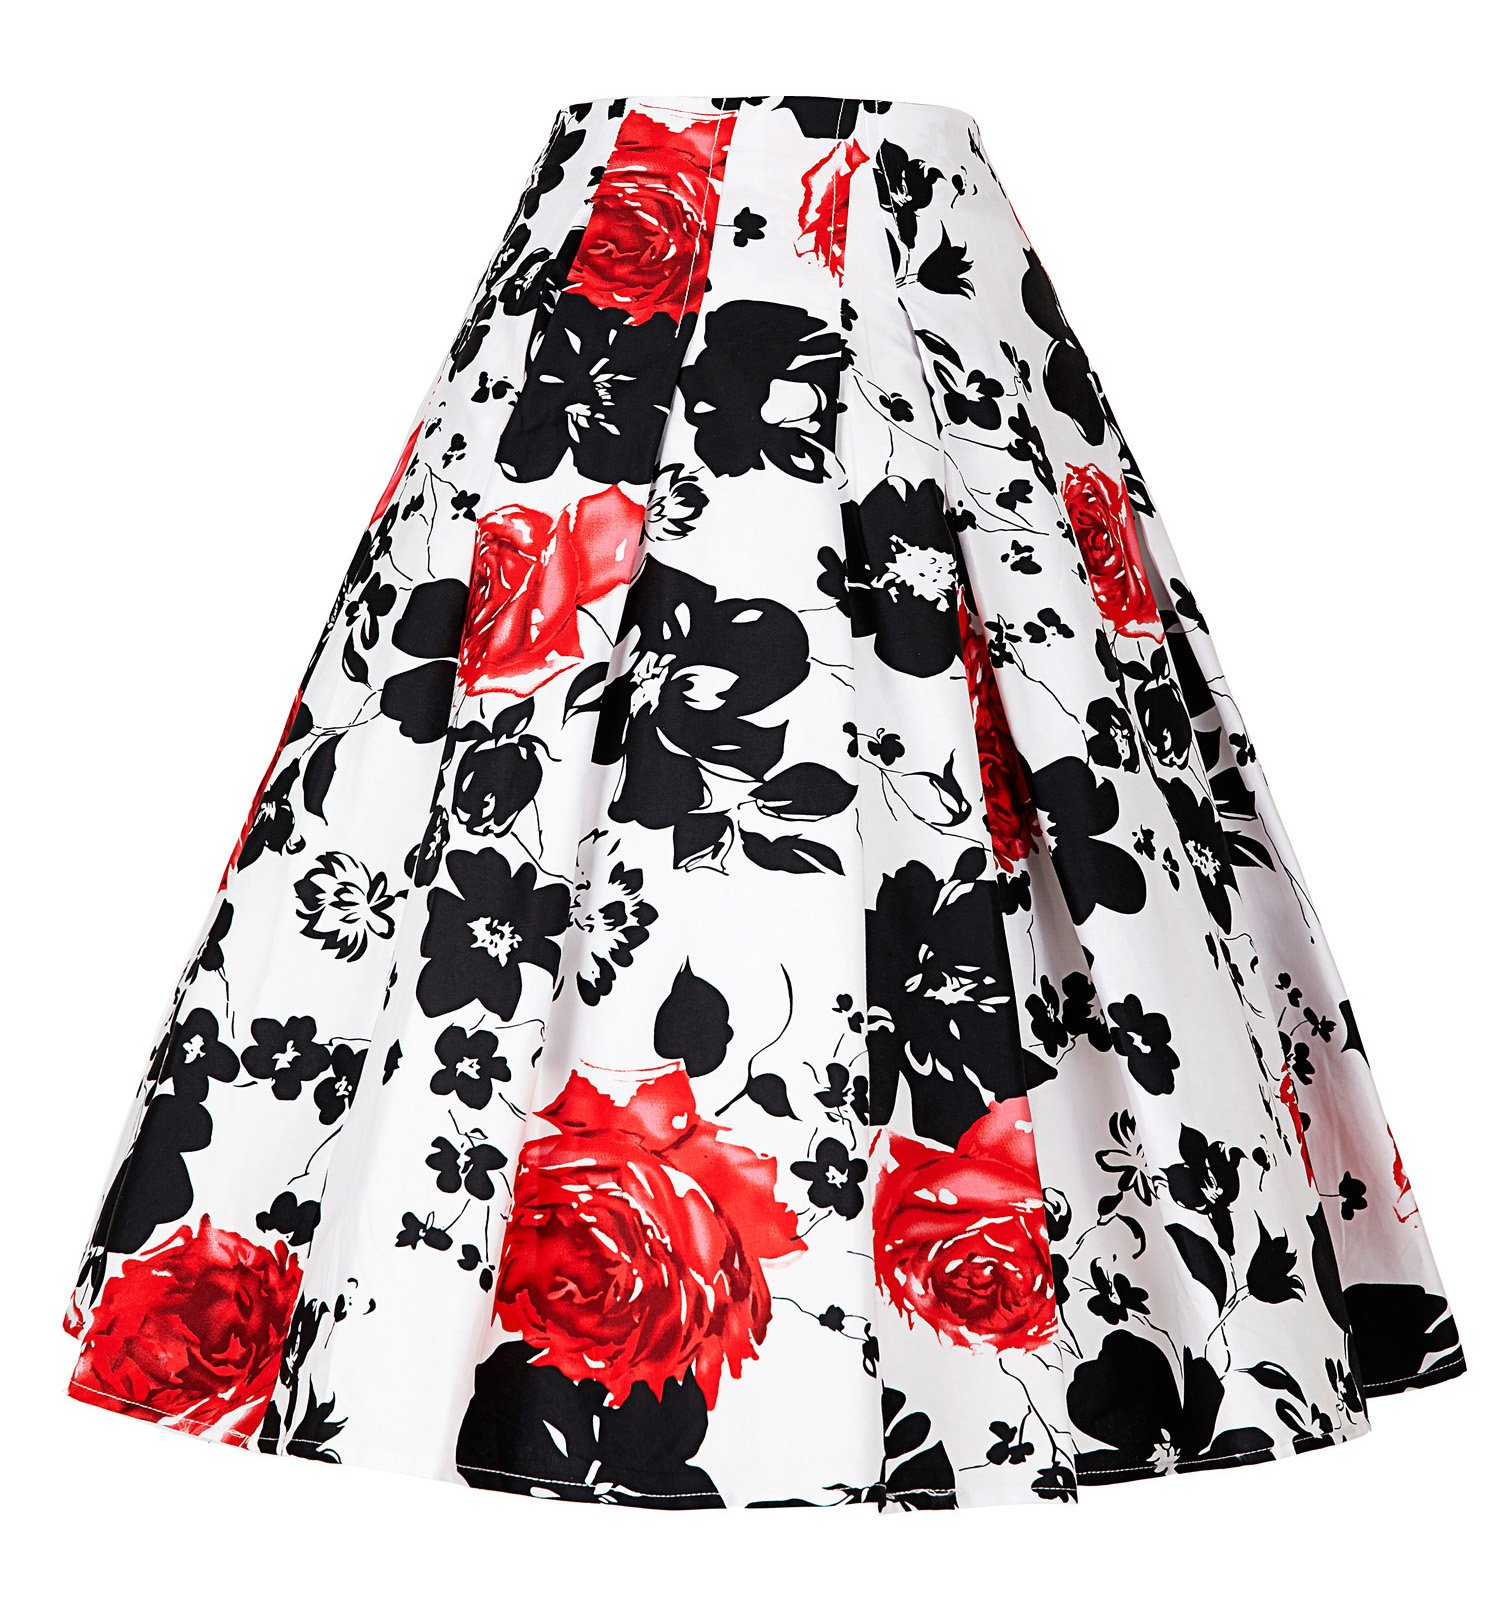 Women Floral Skirts Vintage Flared Style A-line Skirt CL8925 (Small, C-3)